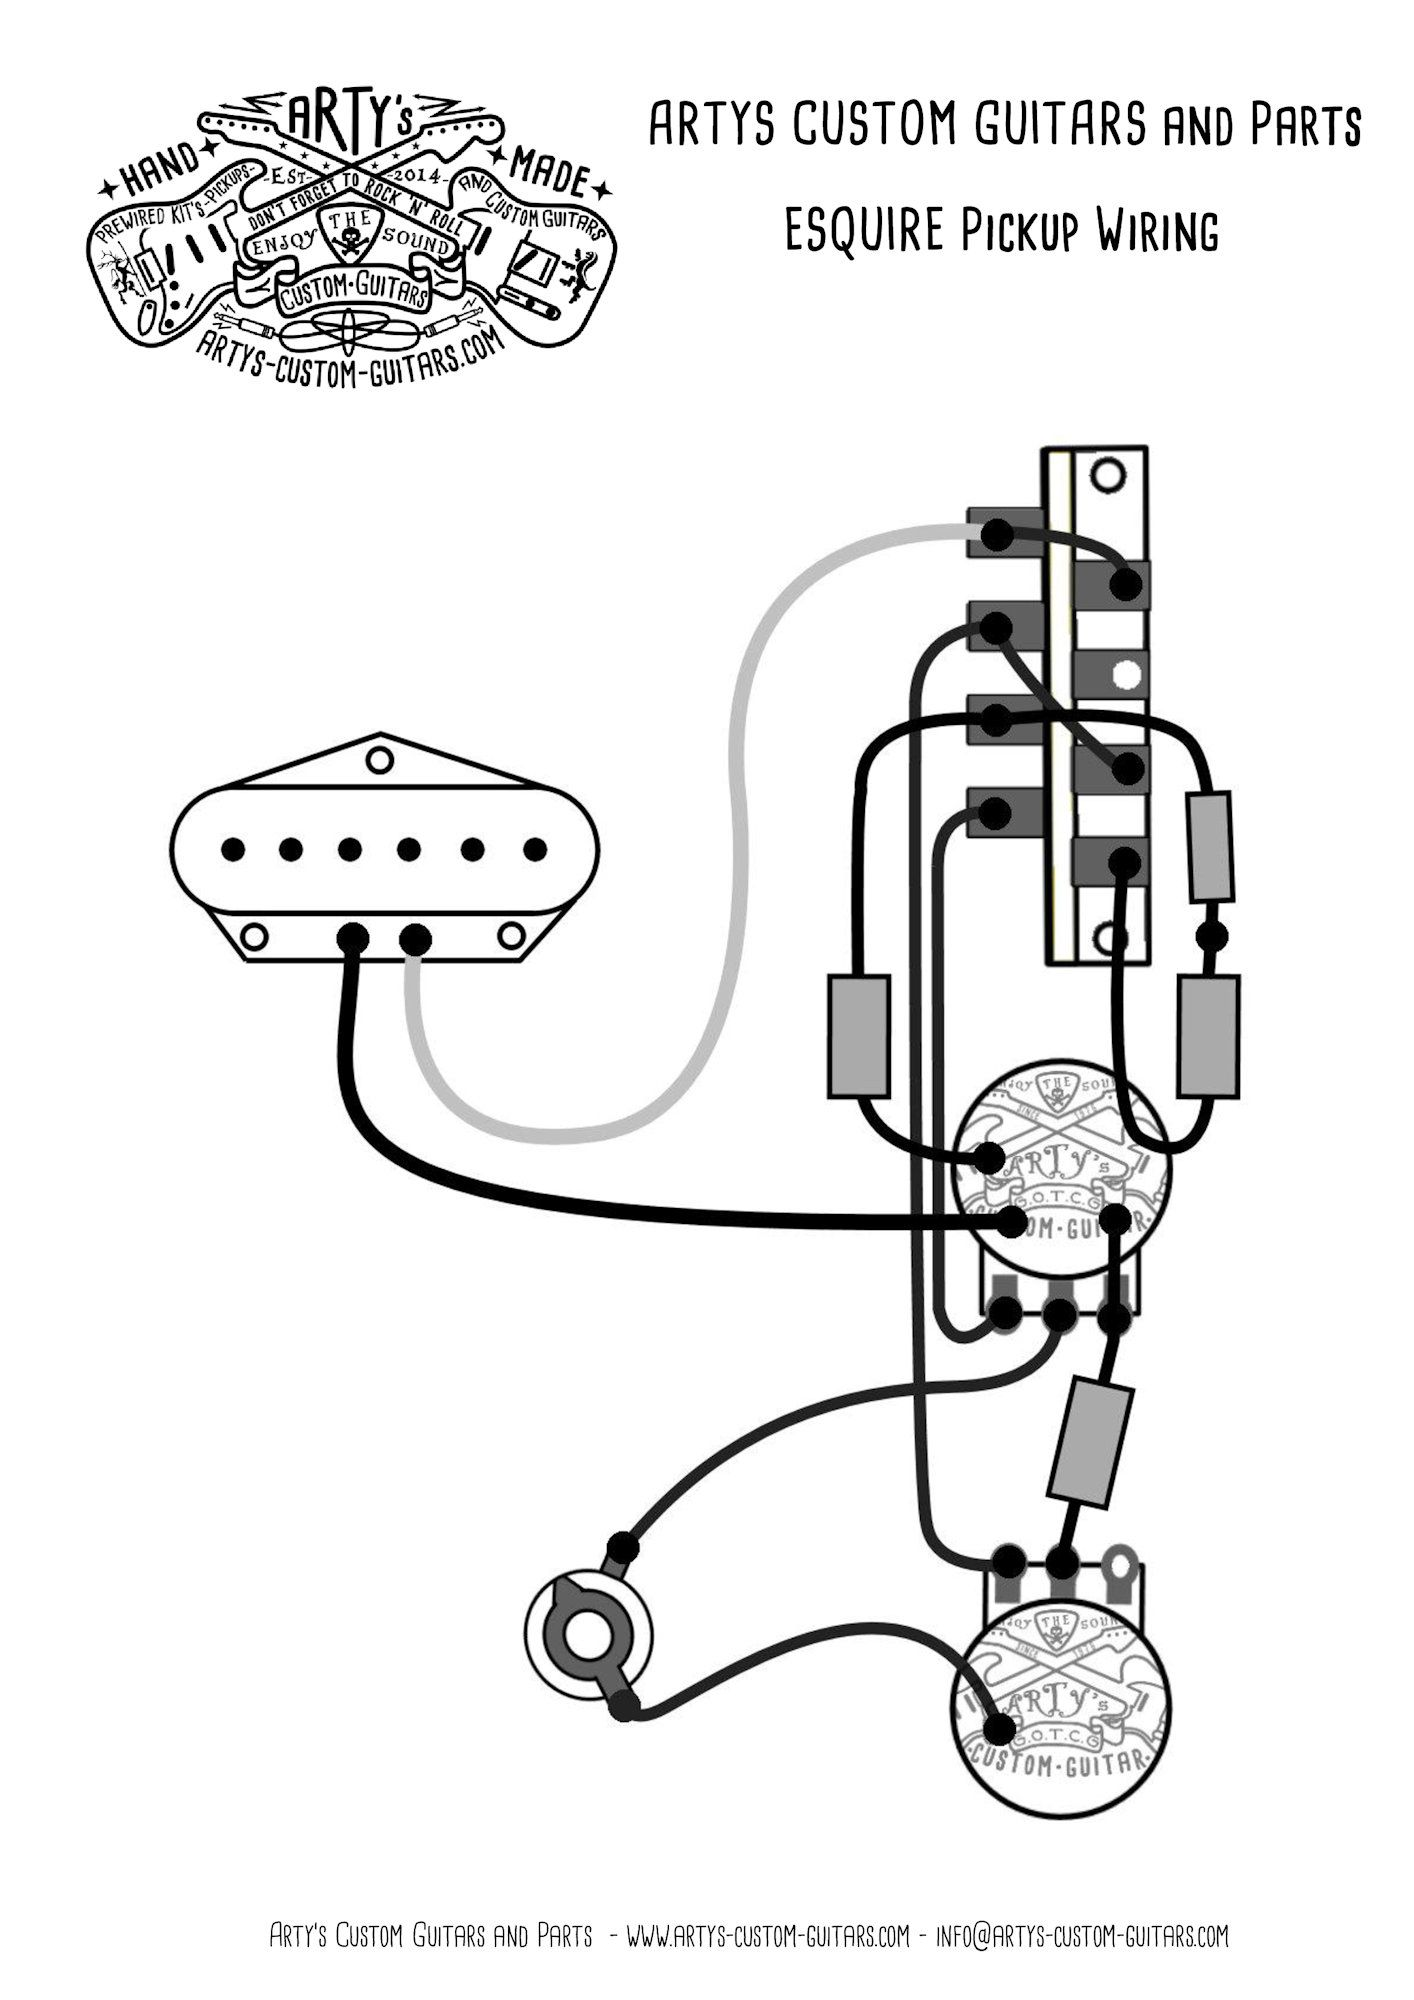 hight resolution of esquire wiring diagram prewired kit arty s custom guitars